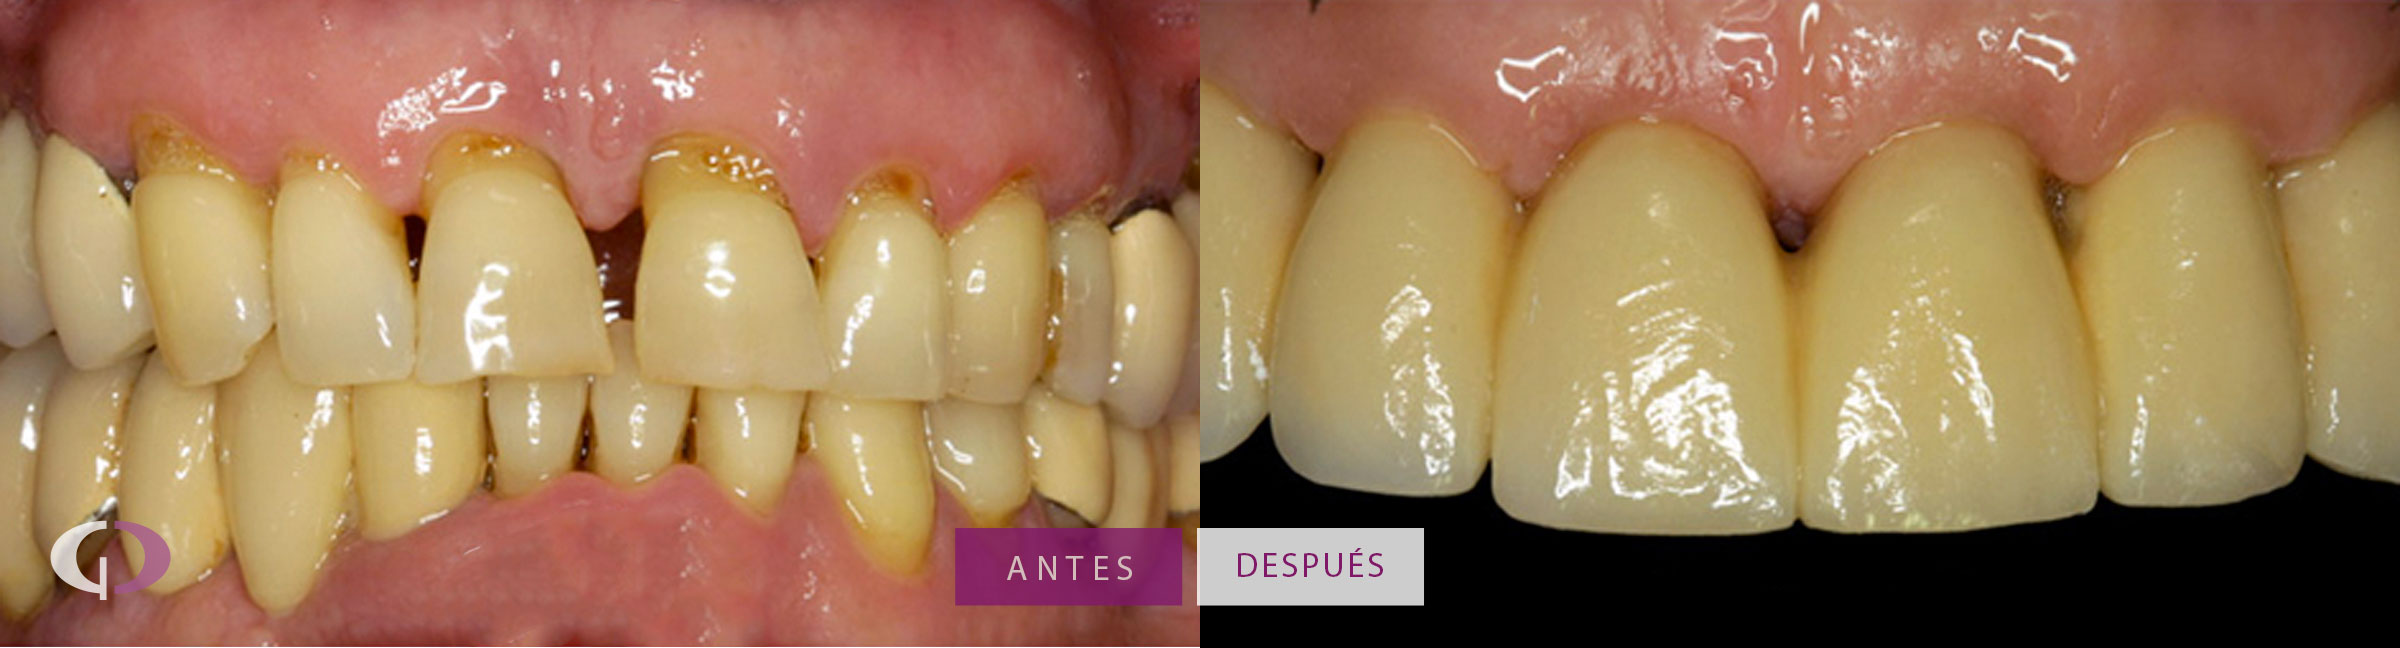 Caso real implantes dentales